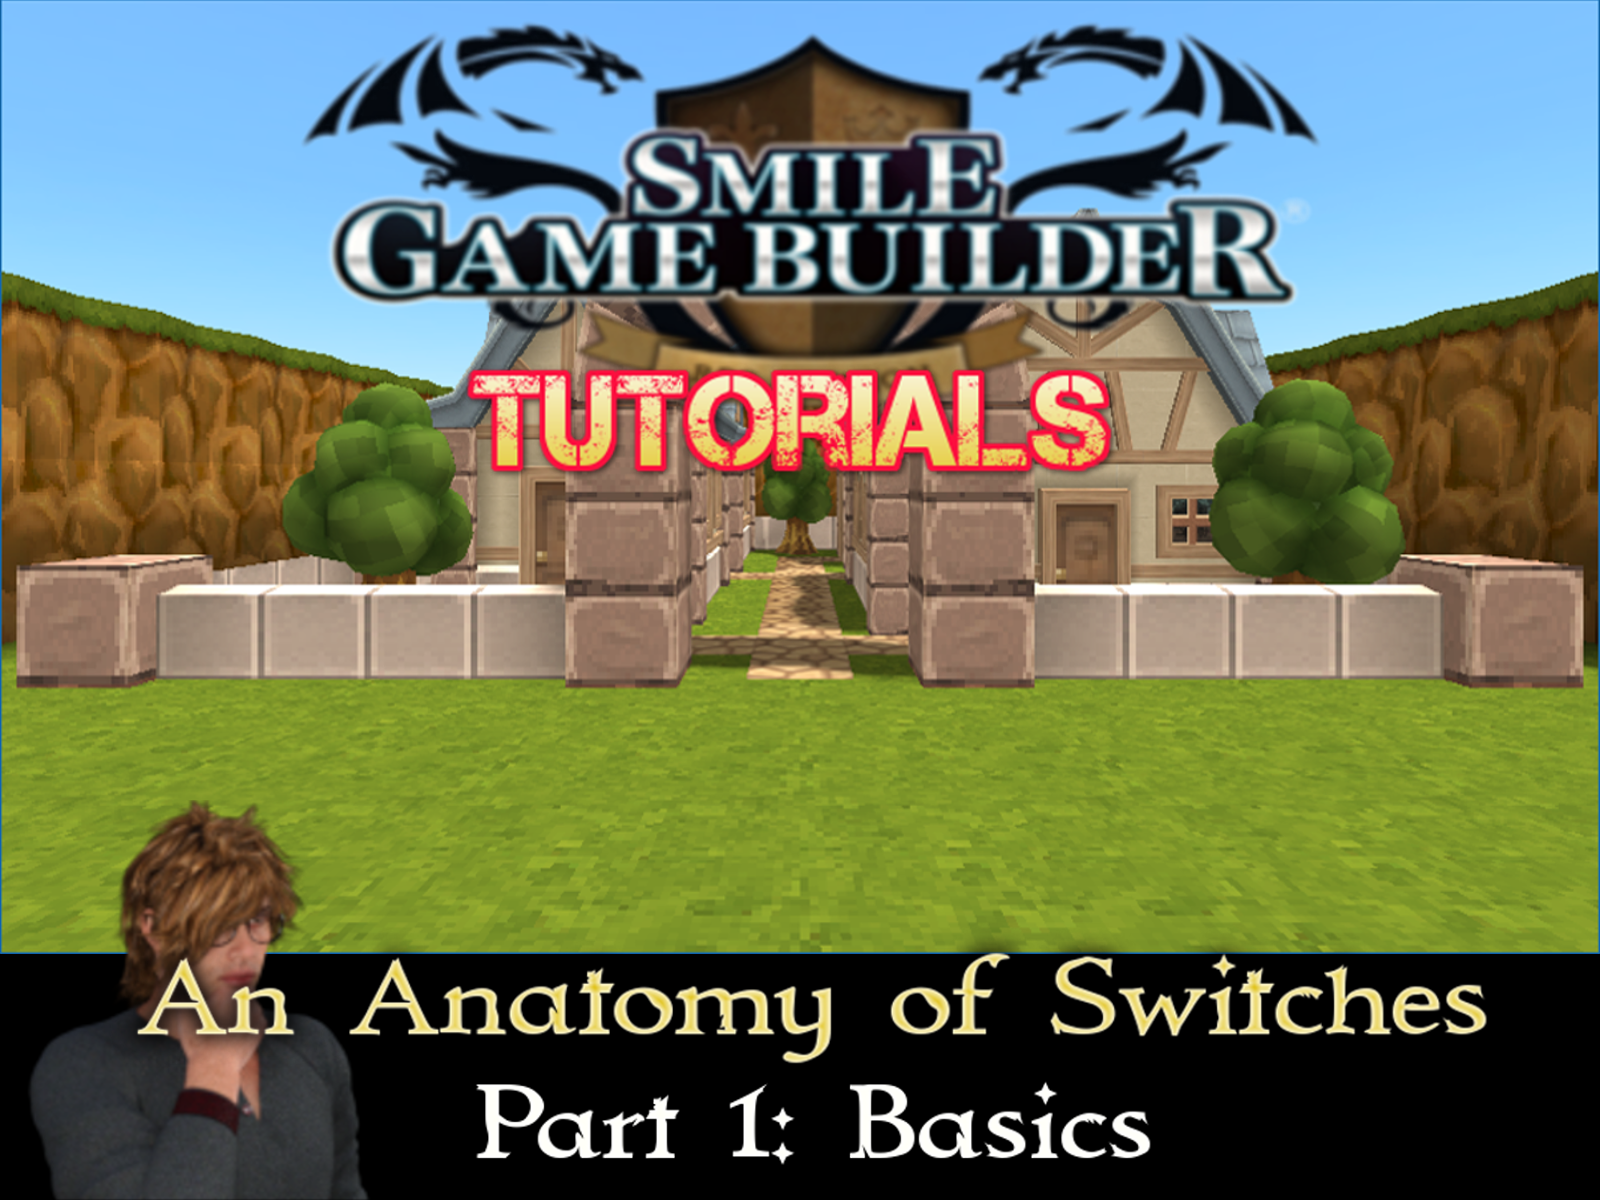 Smile Game Builder An Anatomy of Switches - Part 1: Basics